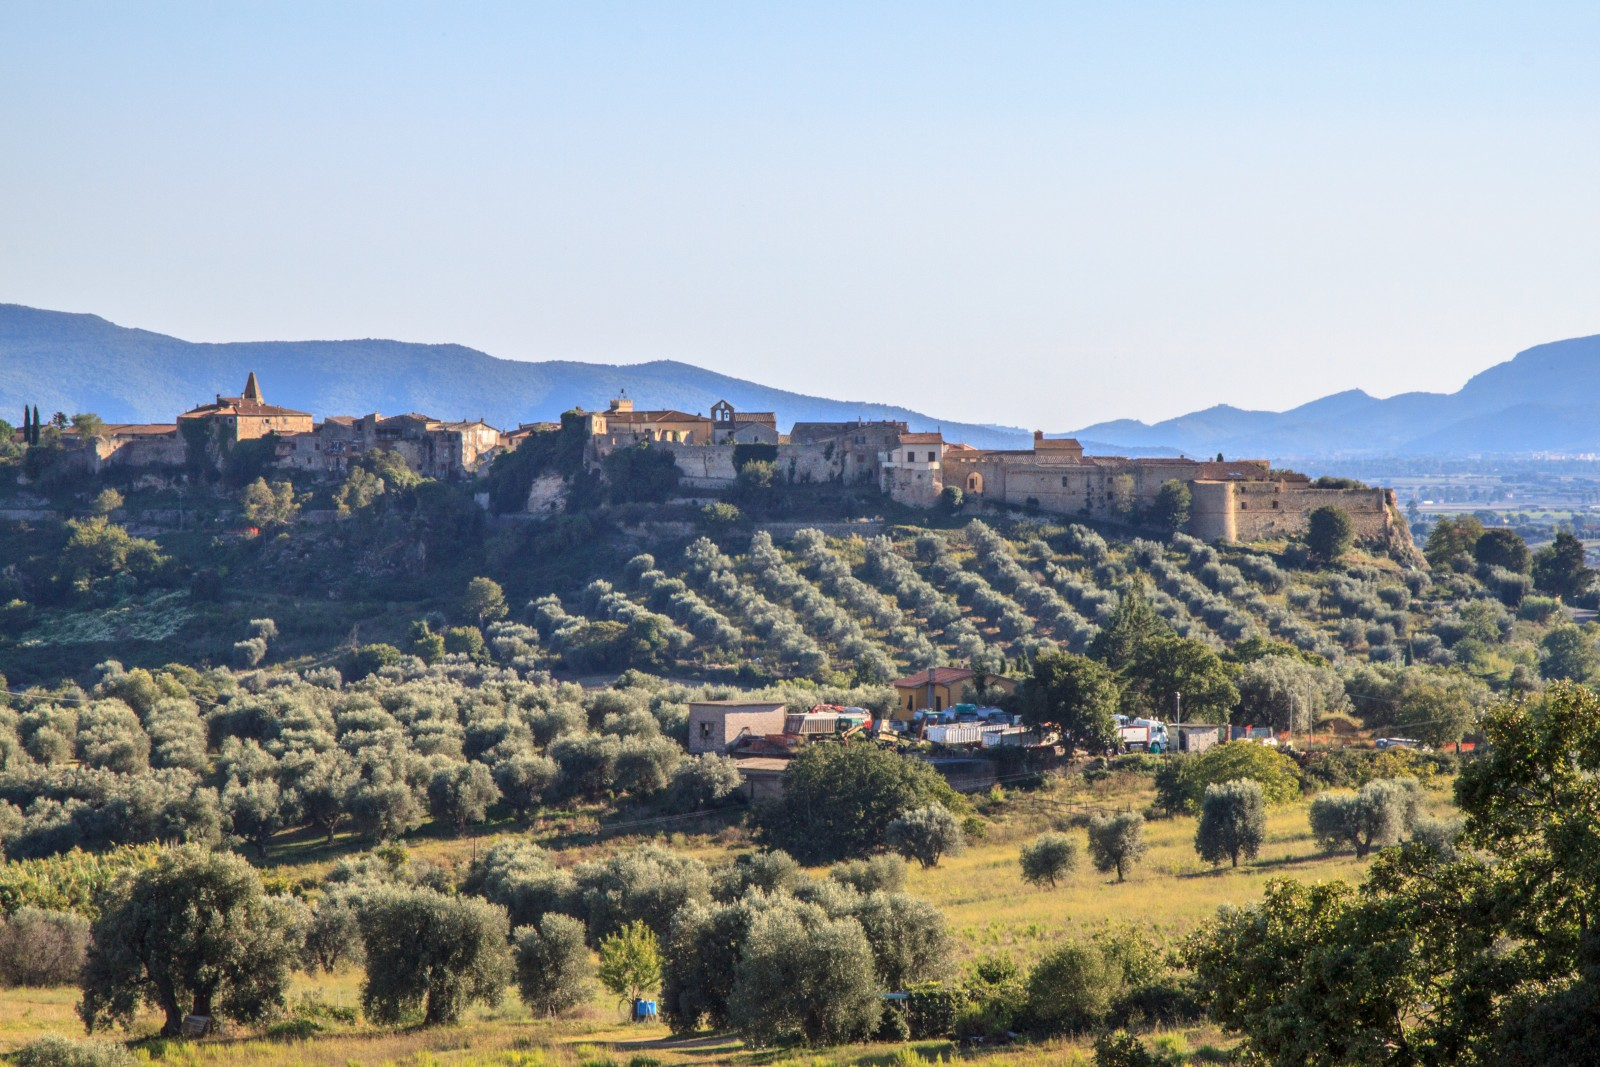 A view of Magliano in Toscana [Photo Credits: Serena Puosi - Tuscany Social Media Team]